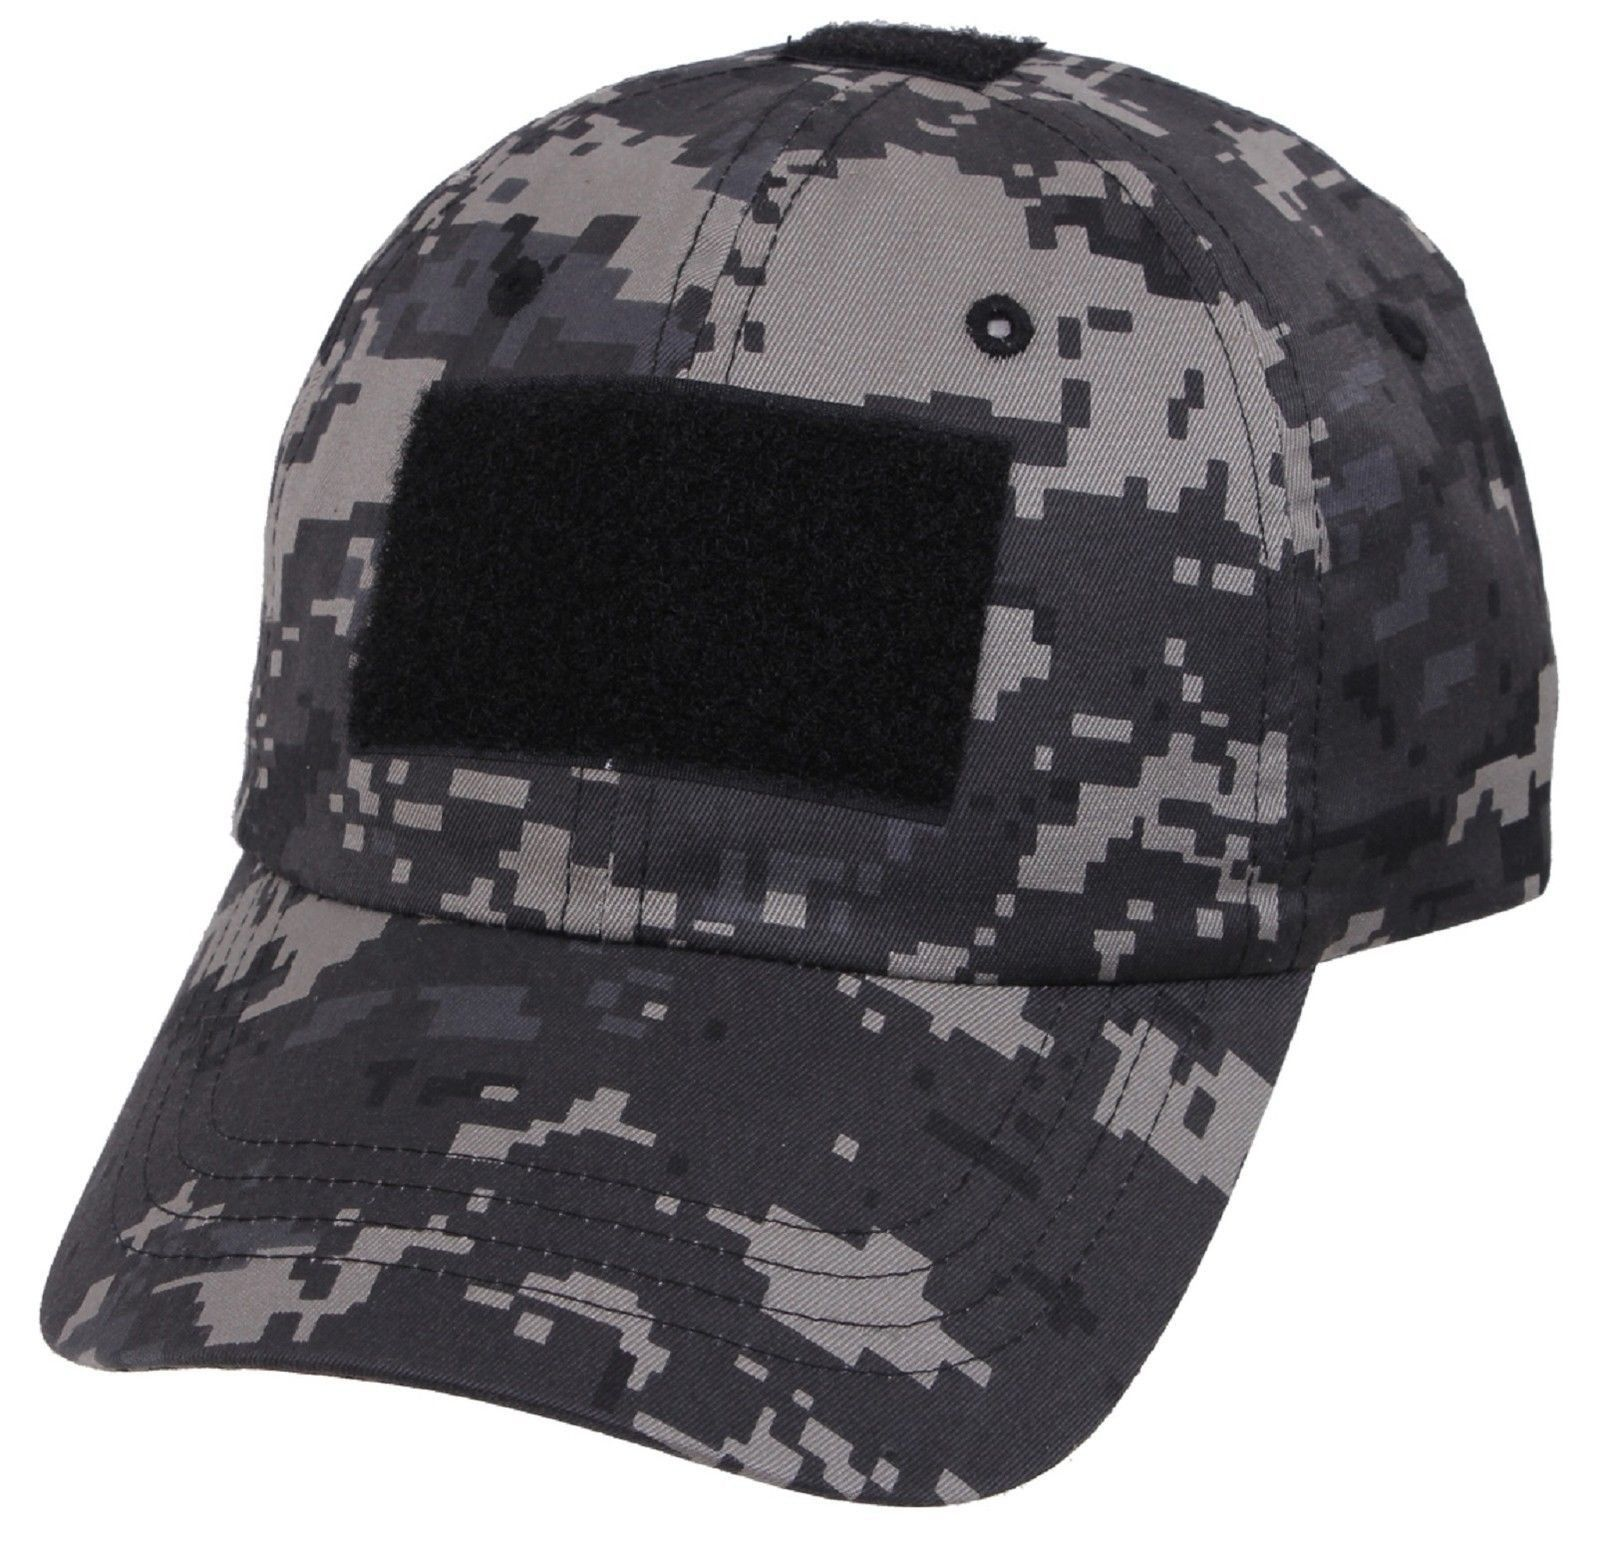 Adjustable Military Hat Street Fitted Urban Cap Rothco